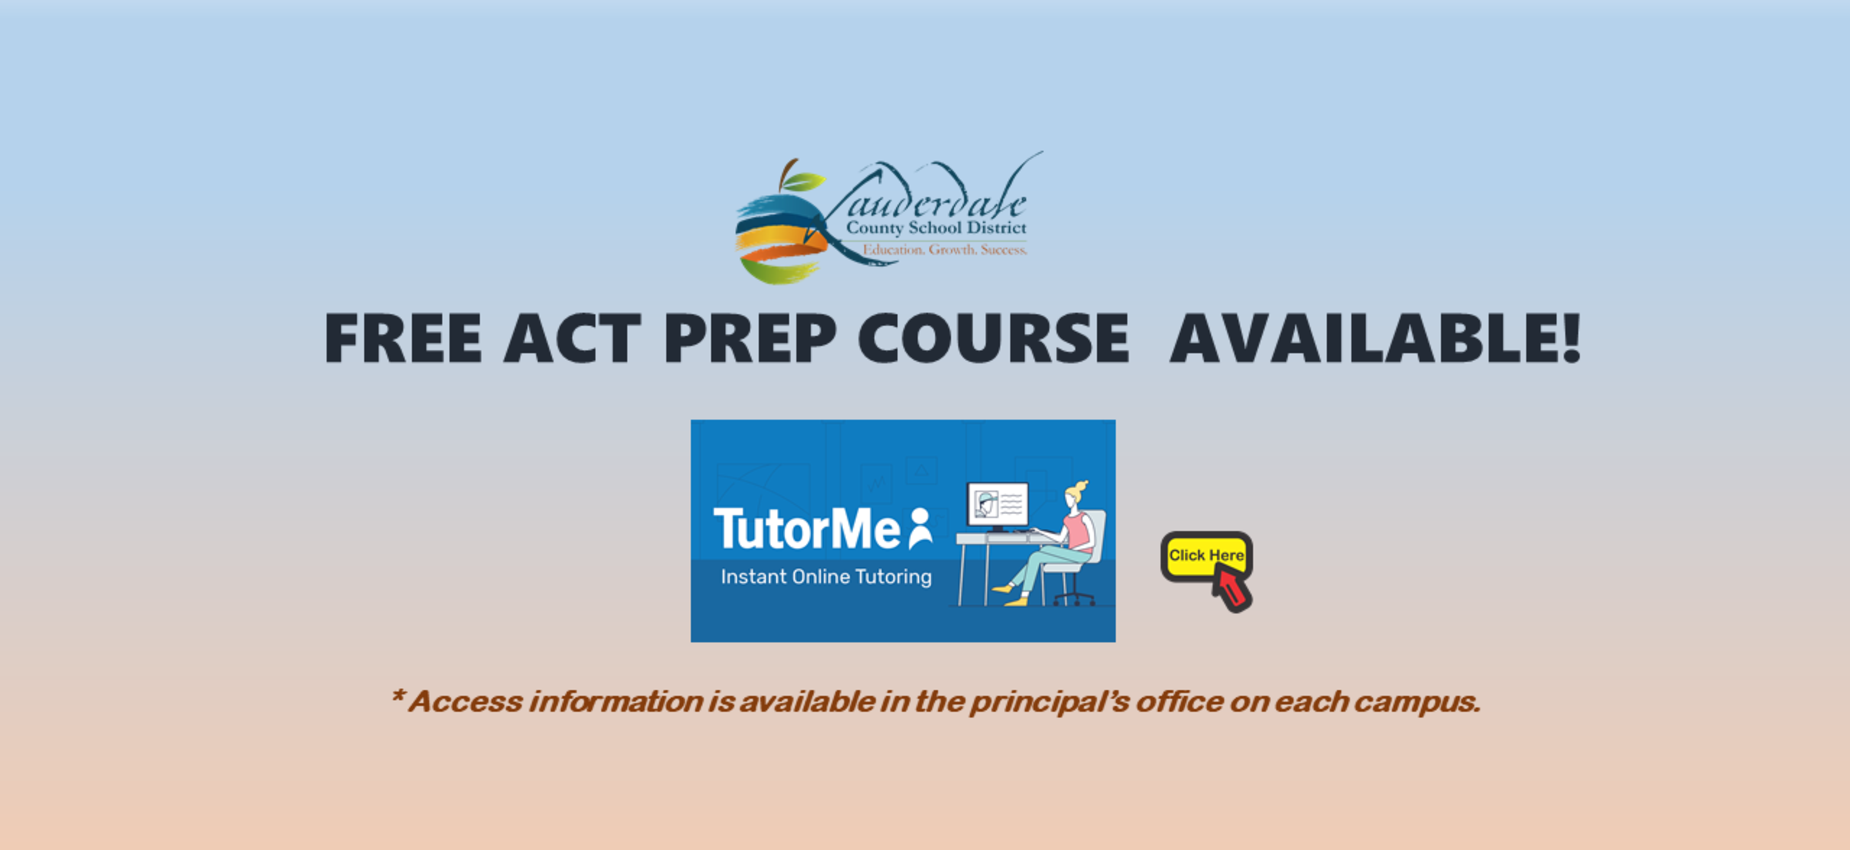 Free ACT Prep Course Available Graphic